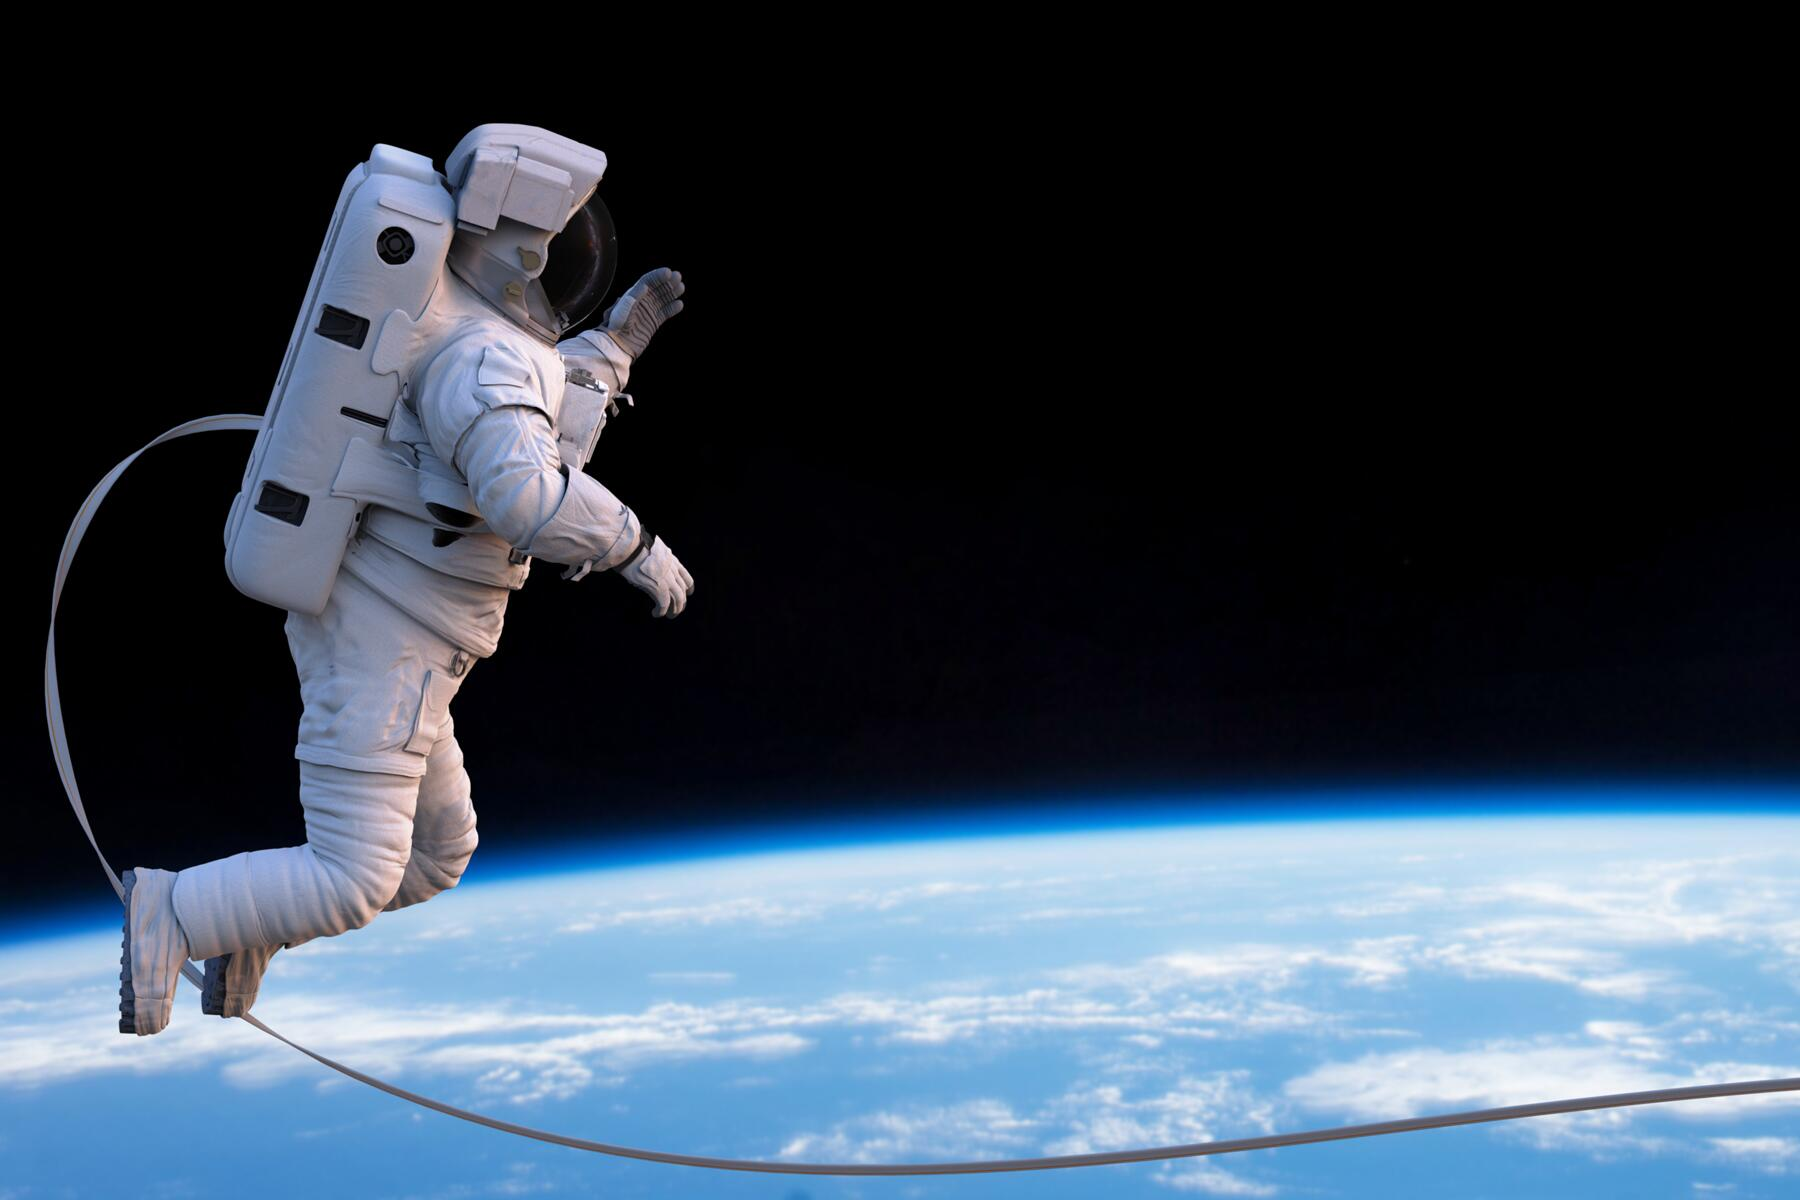 Different sides of commercial space tourism: Is it Good or Bad?